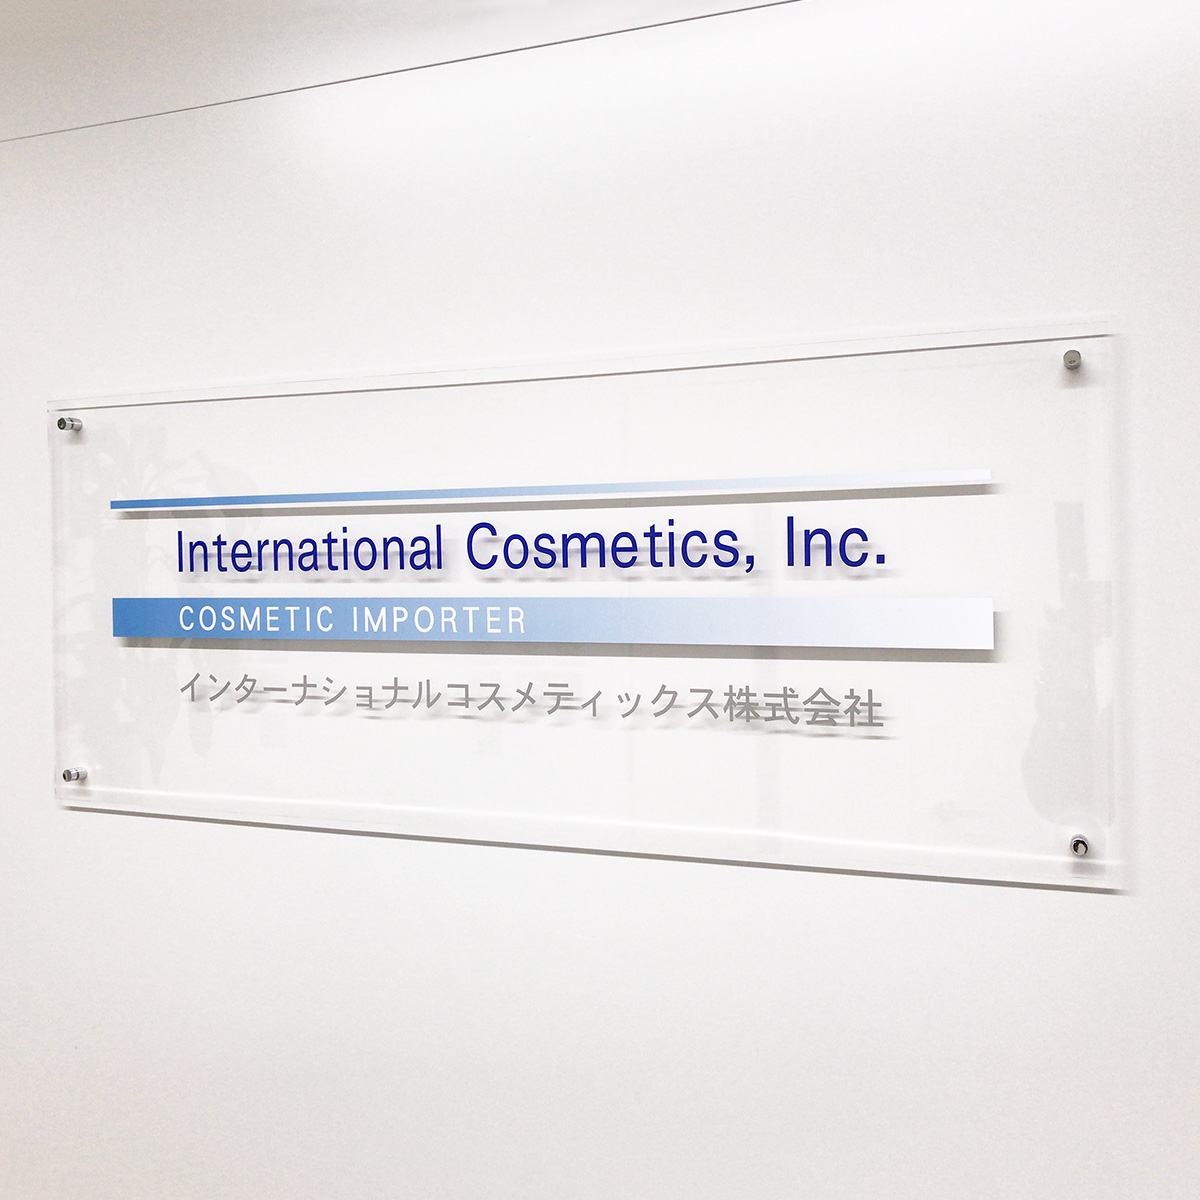 【フロアサイン】International Cosmetics, Inc.